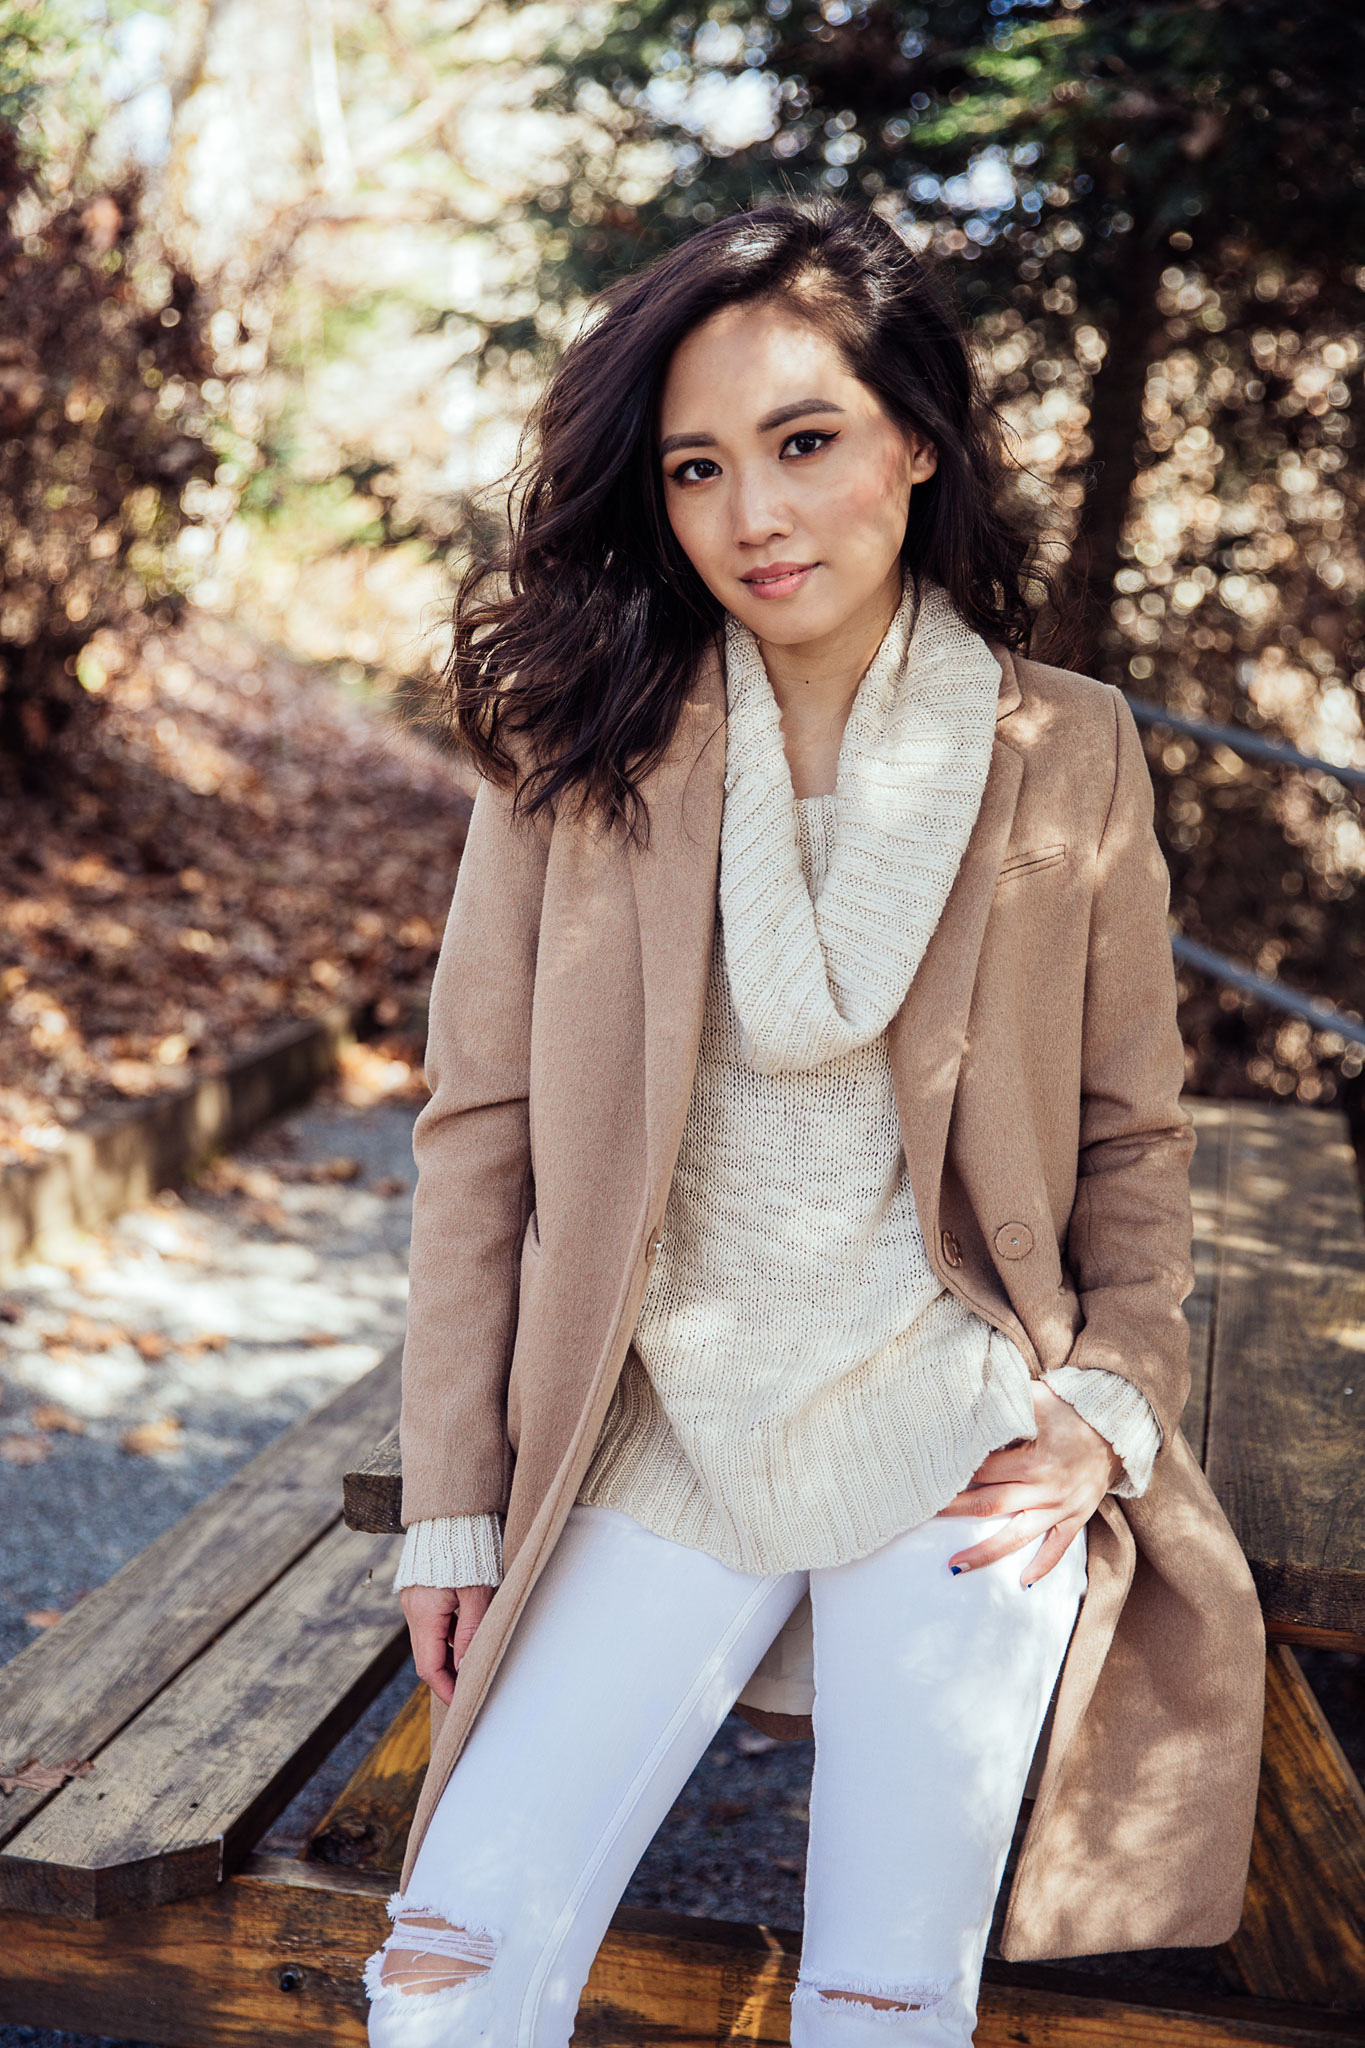 Fall Outfit - Camel Coat with Cowl Neck Sweater   le-jolie.com